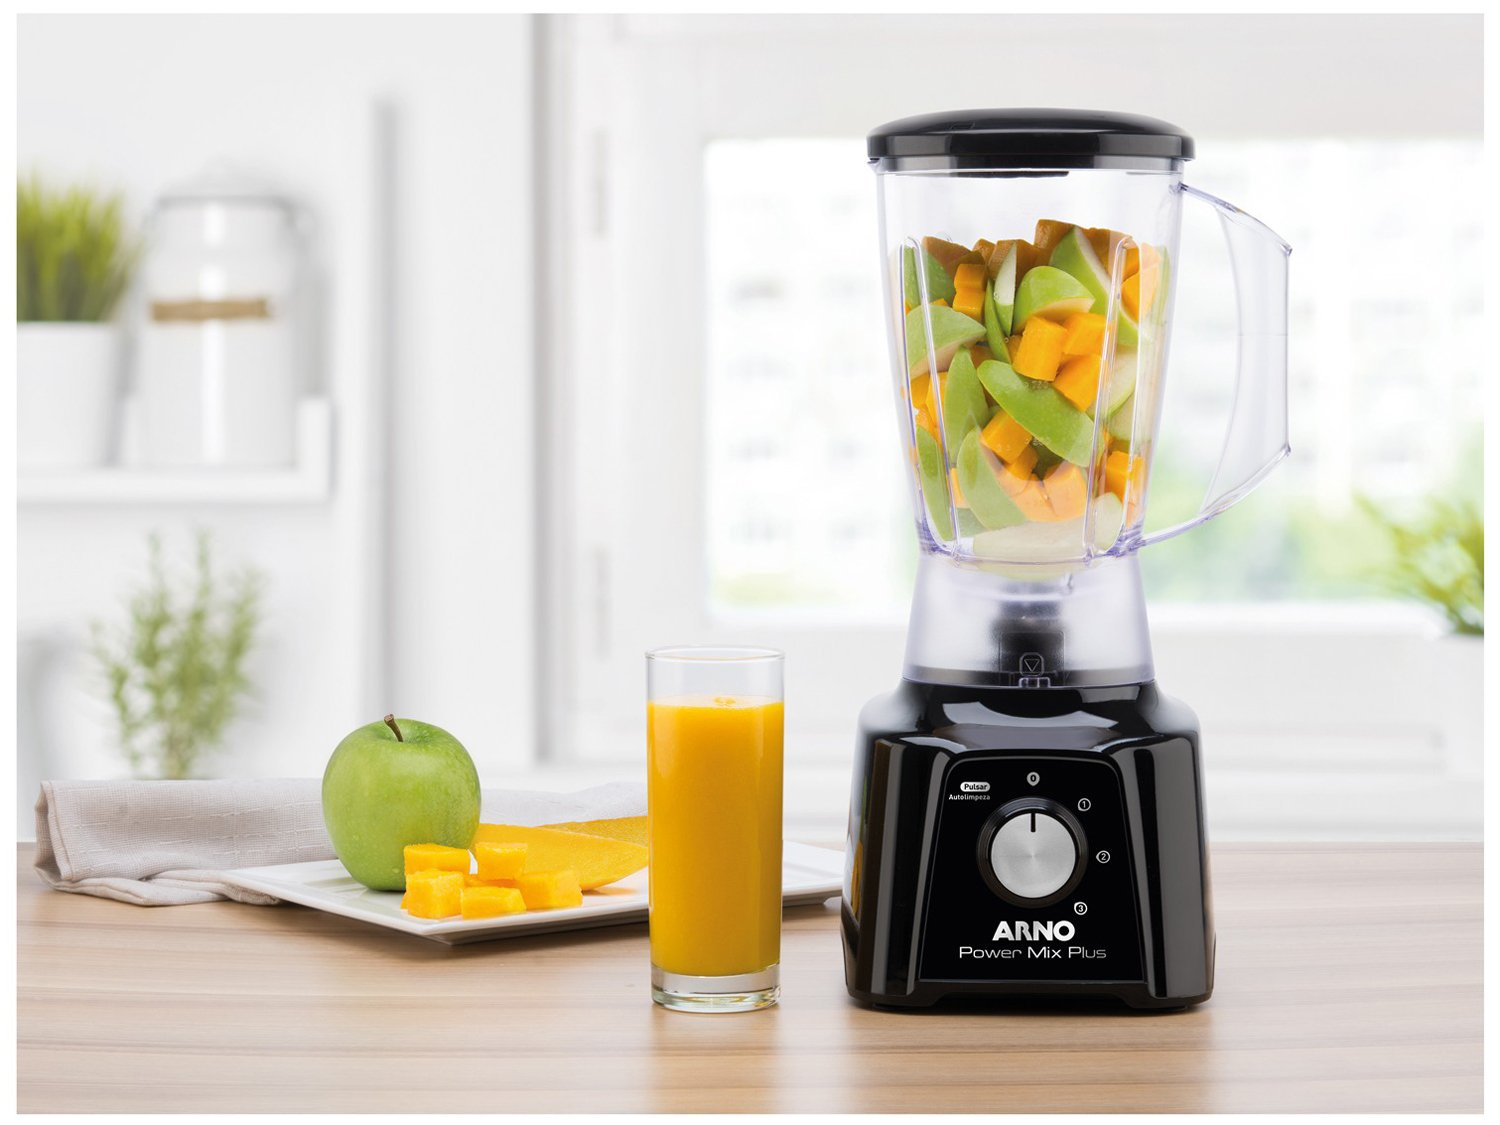 Liquidificador Arno Power Mix Plus LQ20 com 3 Velocidades 550W – Preto - 110V - 12